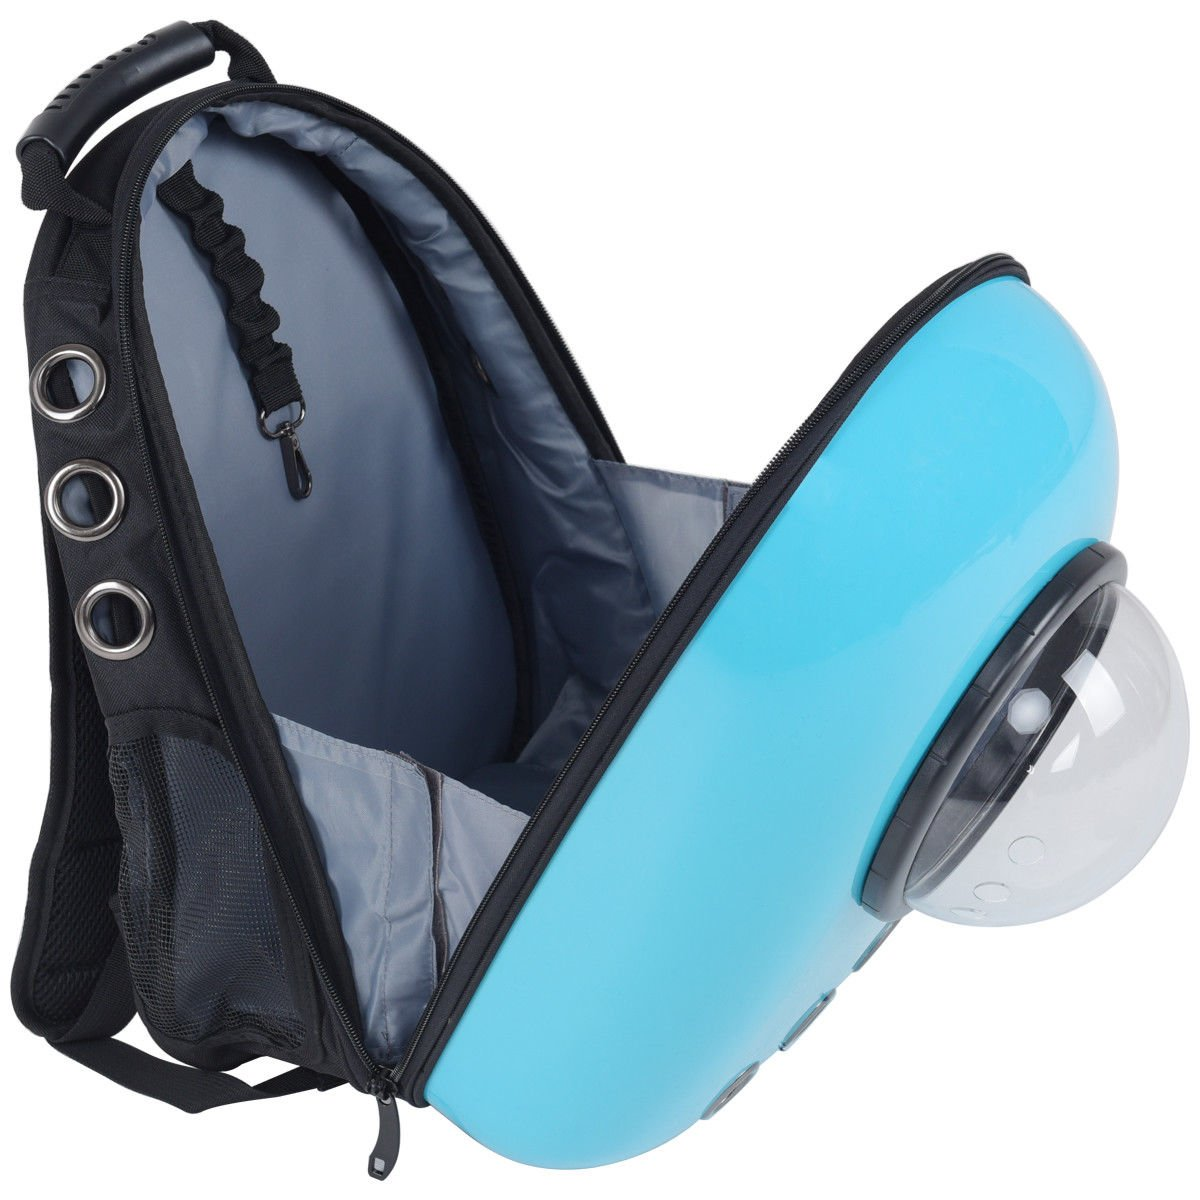 a4ade4e826ed Giantex Astronaut Pet Cat Dog Puppy Carrier Travel Bag Space Capsule  Backpack Breathable PS6349GDNew  1541654787-323548  -  21.41